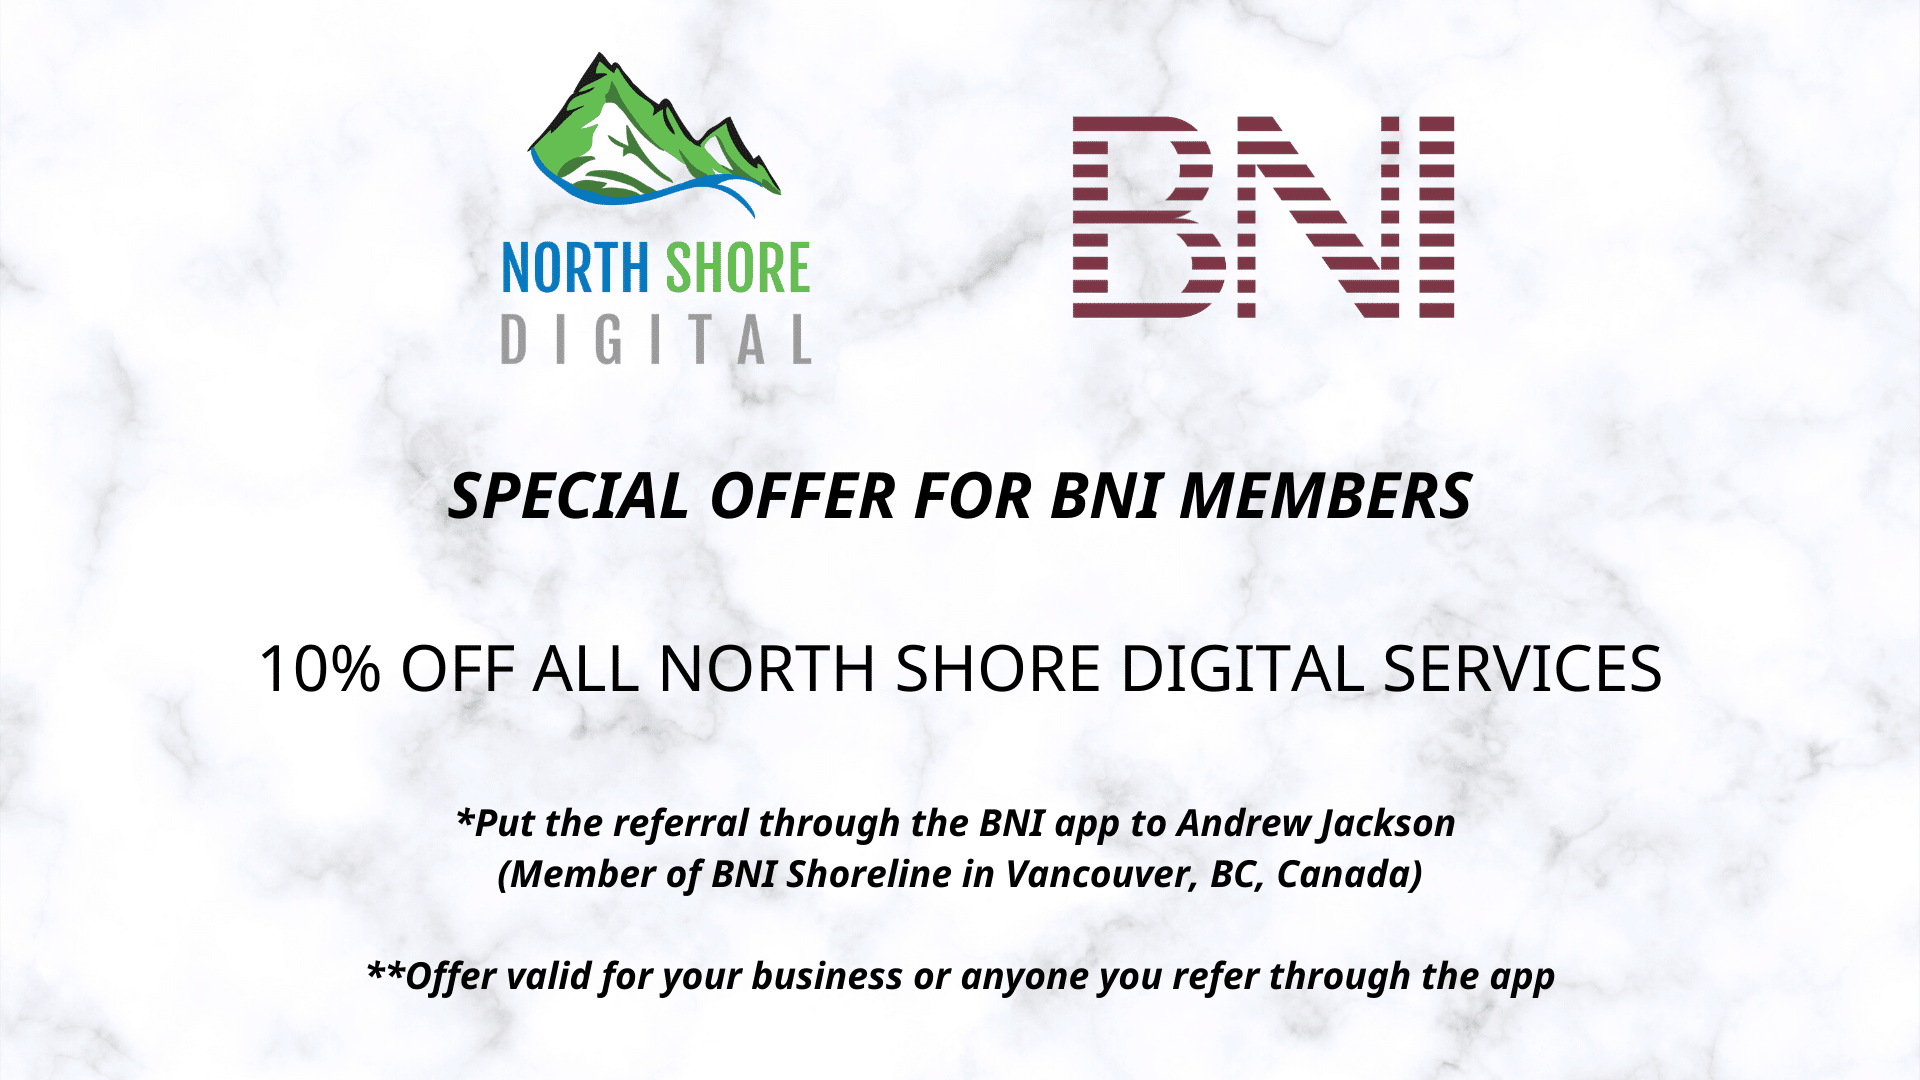 Special Offer to BNI Members